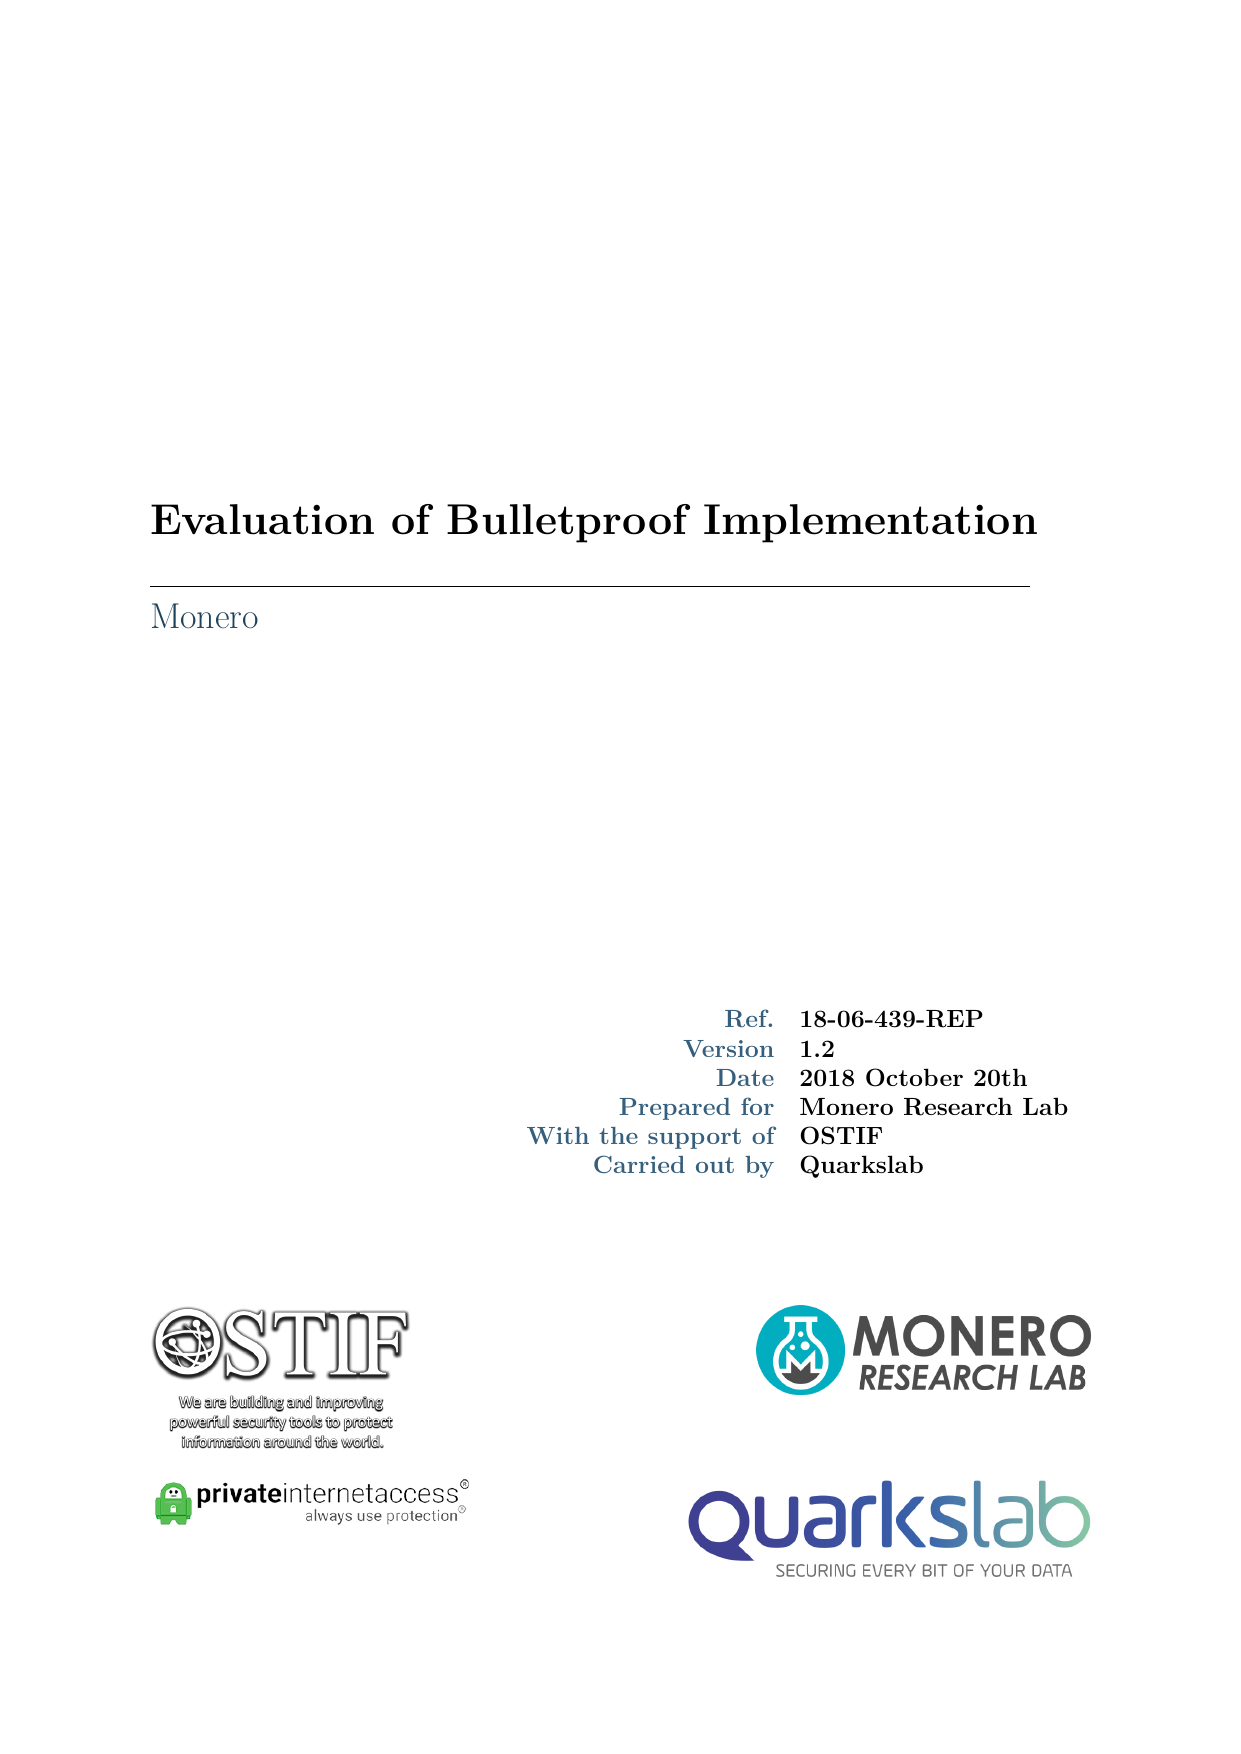 First page of the 'OSTIF-QuarksLab-Monero-Bulletproofs-Final2' PDF